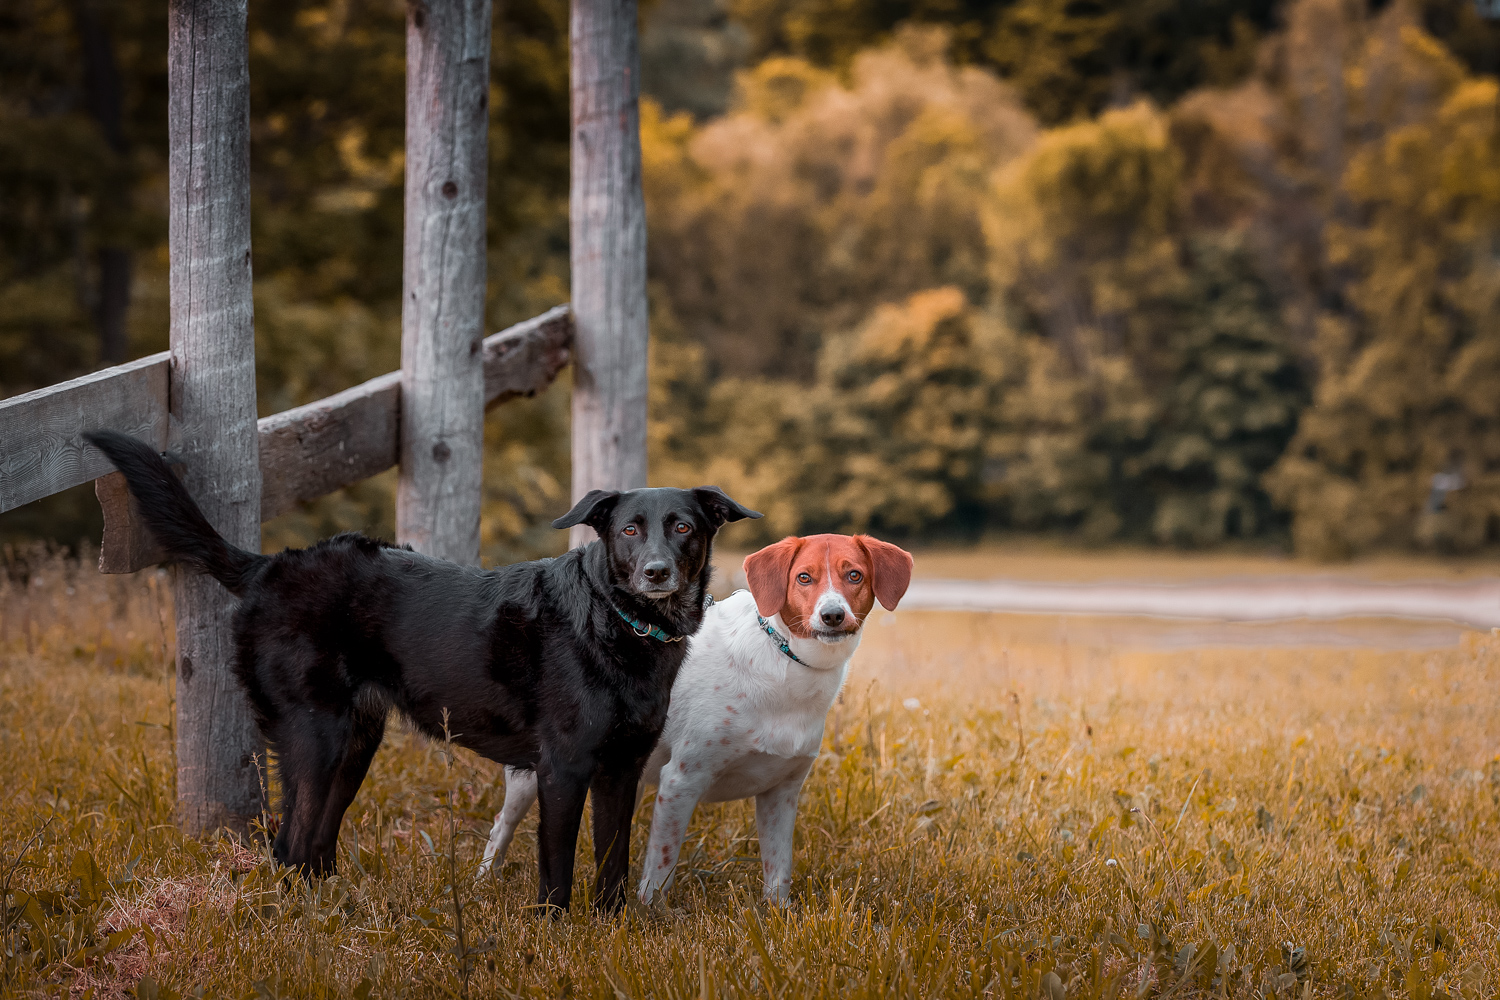 Tow dogs at a fence photographed in Autumn at Earl Bales park Toronto